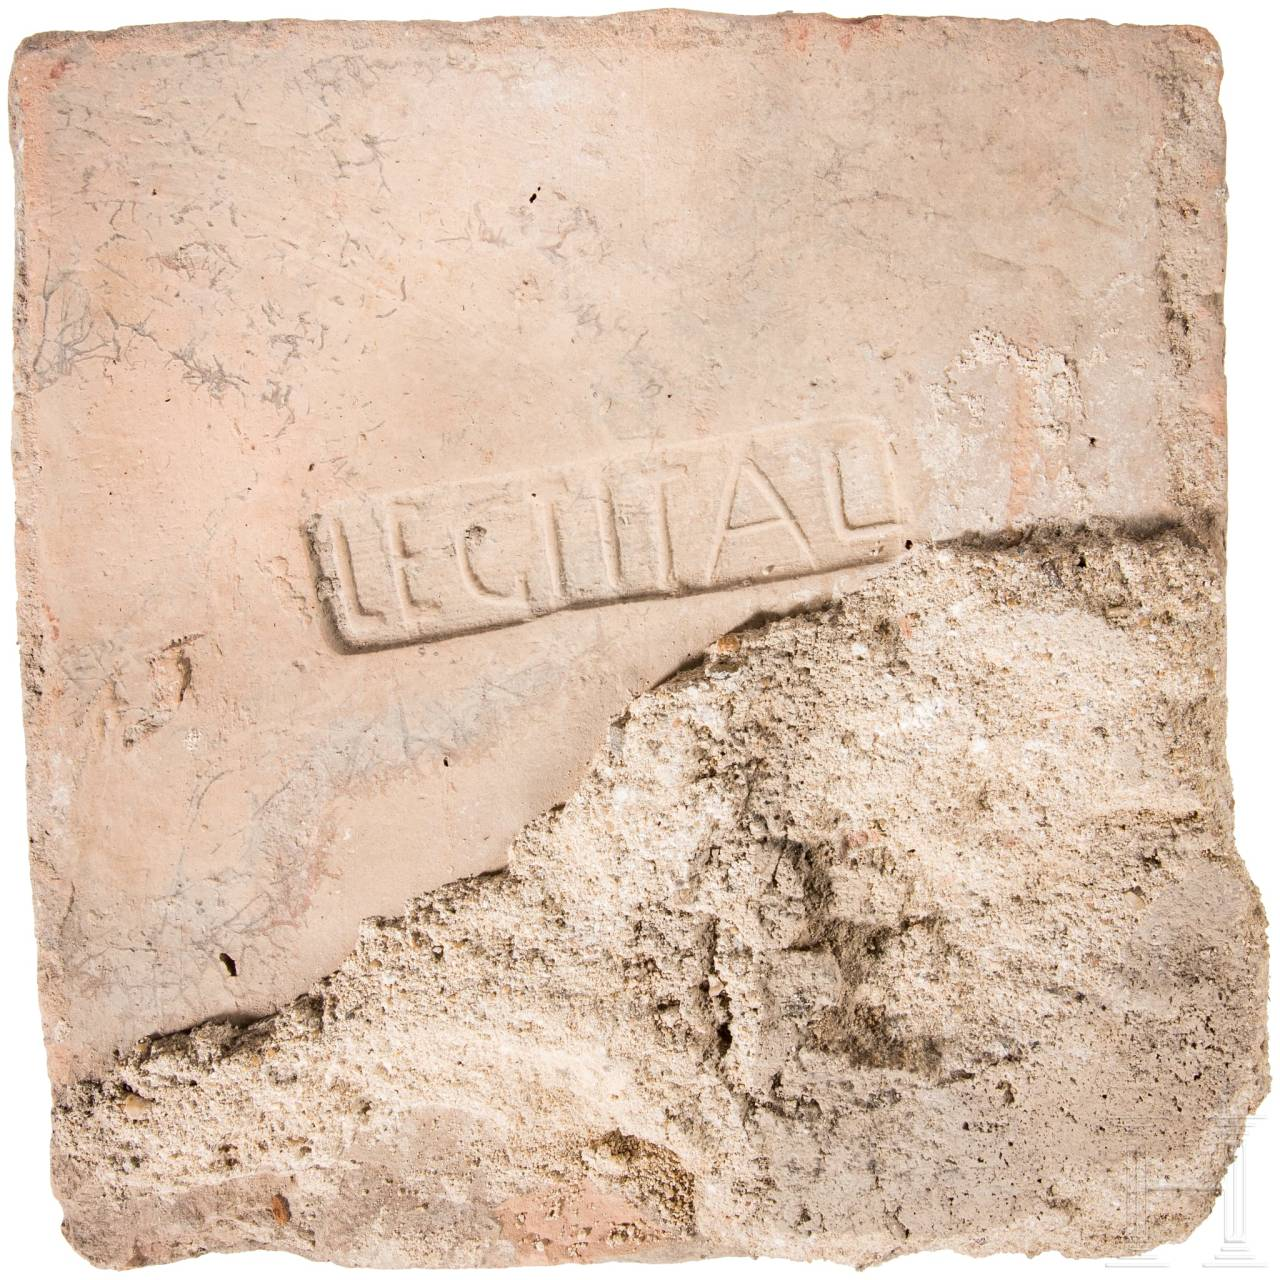 A Roman brick fragment with stamp of the 1st Legion Italica, end of the 1st - 4th century